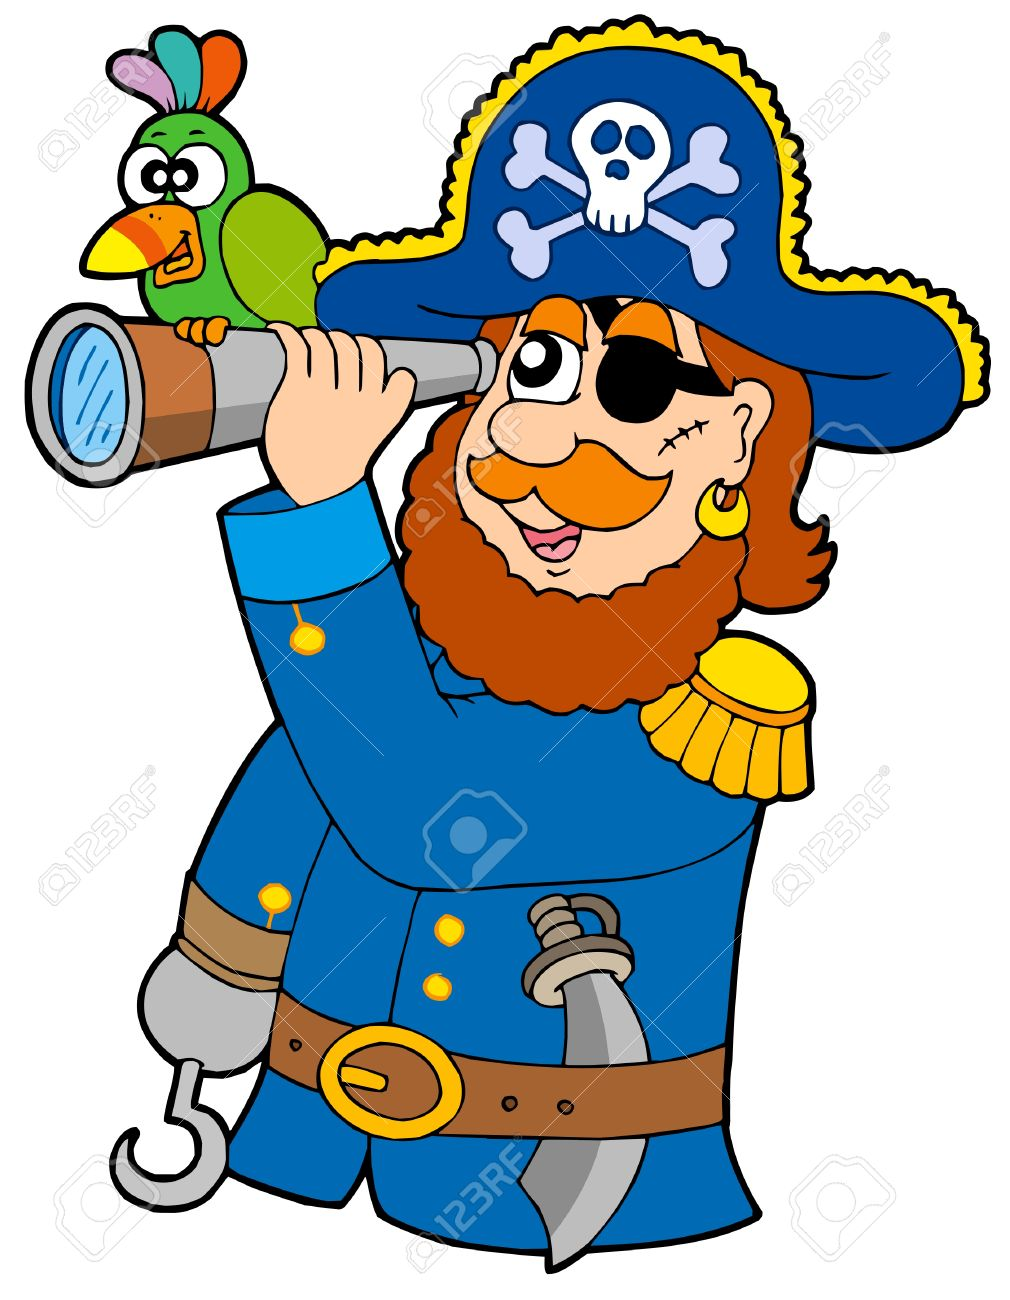 Pirate with spyglass and parrot - vector illustration. Stock Vector - 4743355